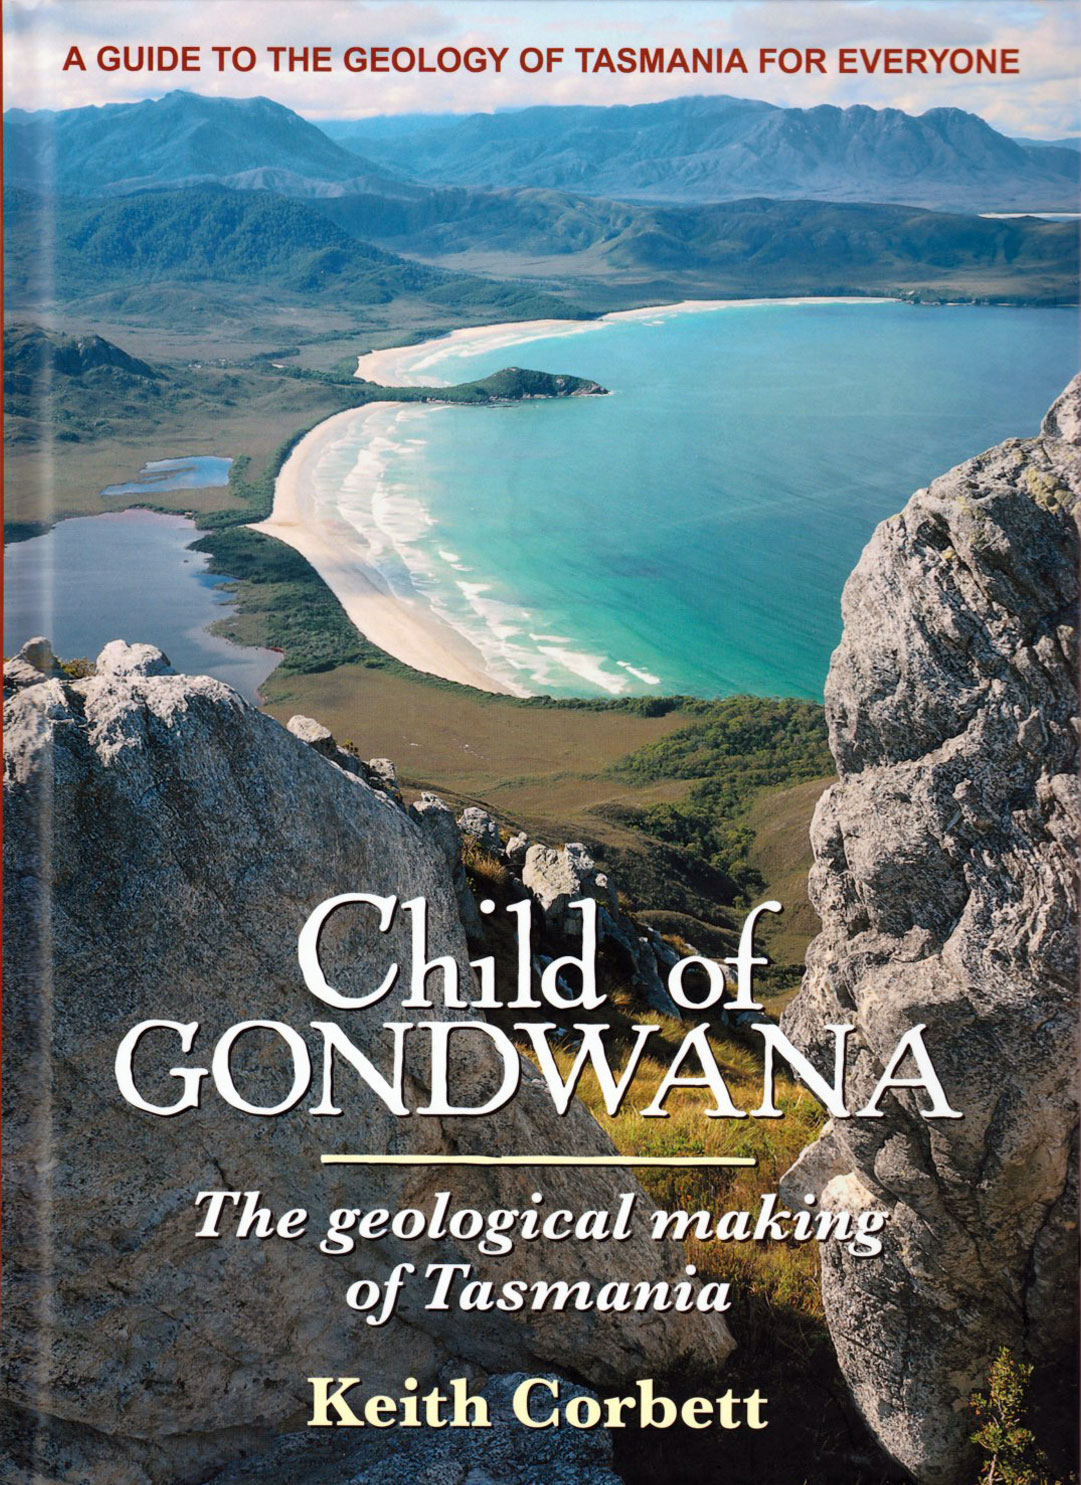 Child of Gondwana - the geological making of Tasmania